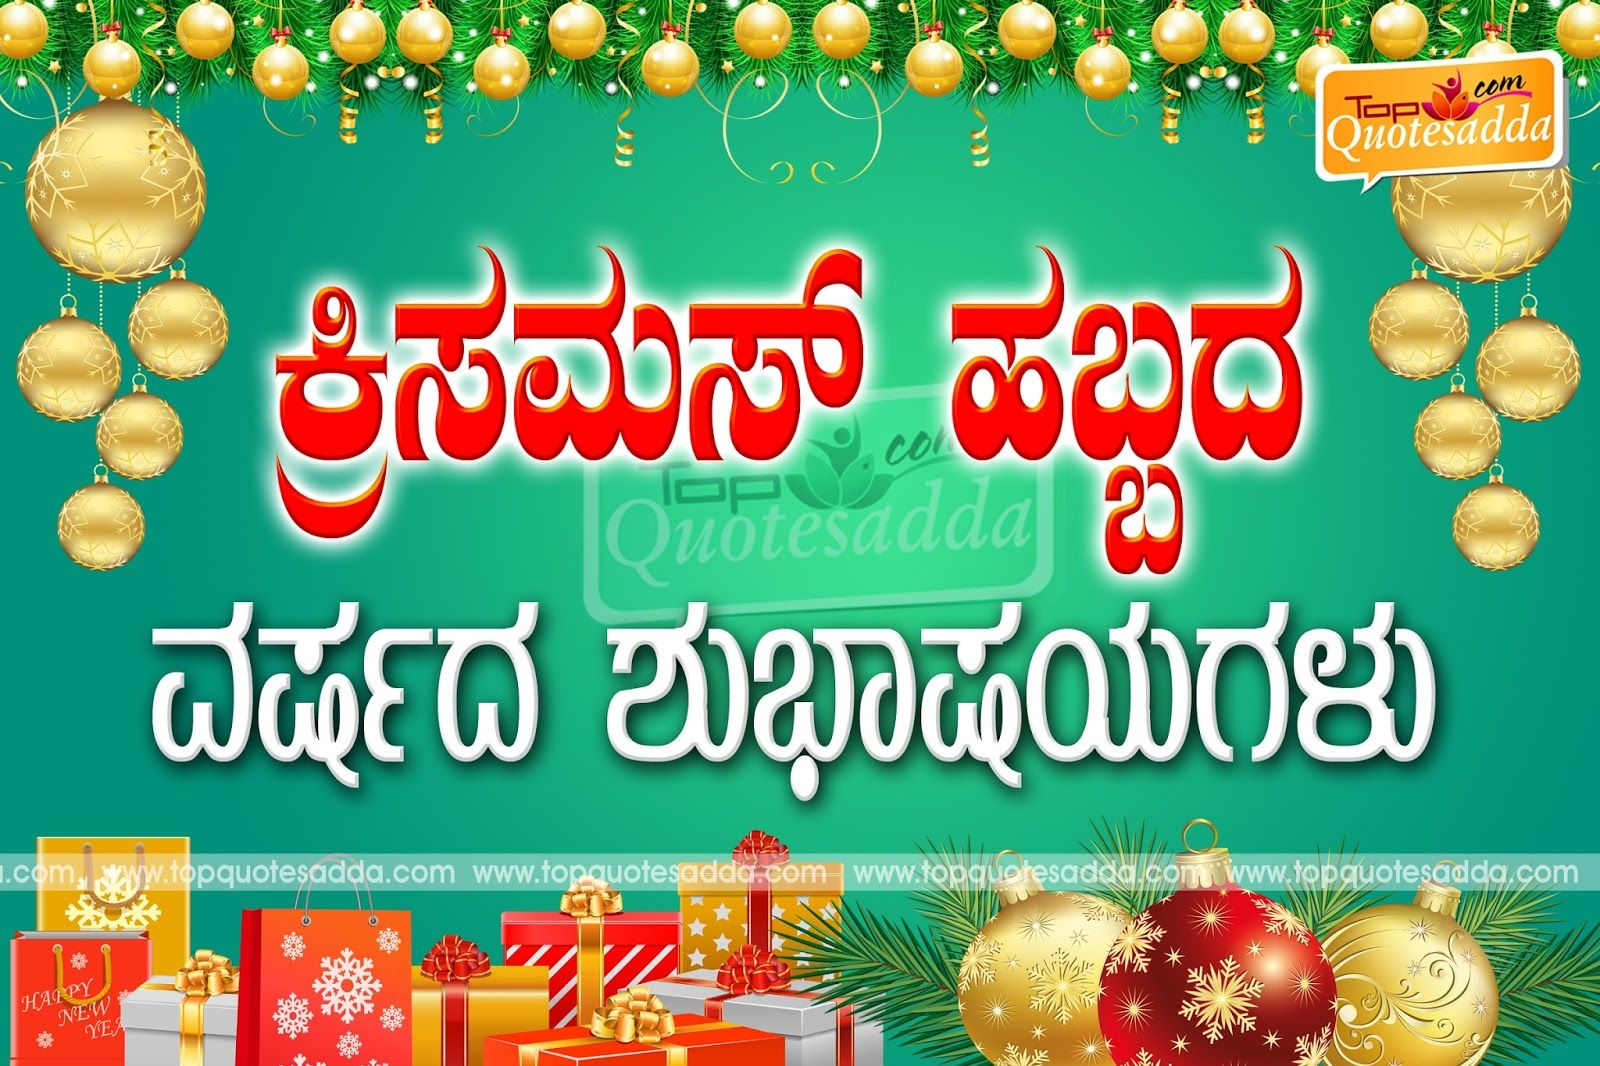 Happy christmas kannada greetings imagesmerry christmas kannada happy christmas kannada nice quotes and greetings kristyandbryce Choice Image